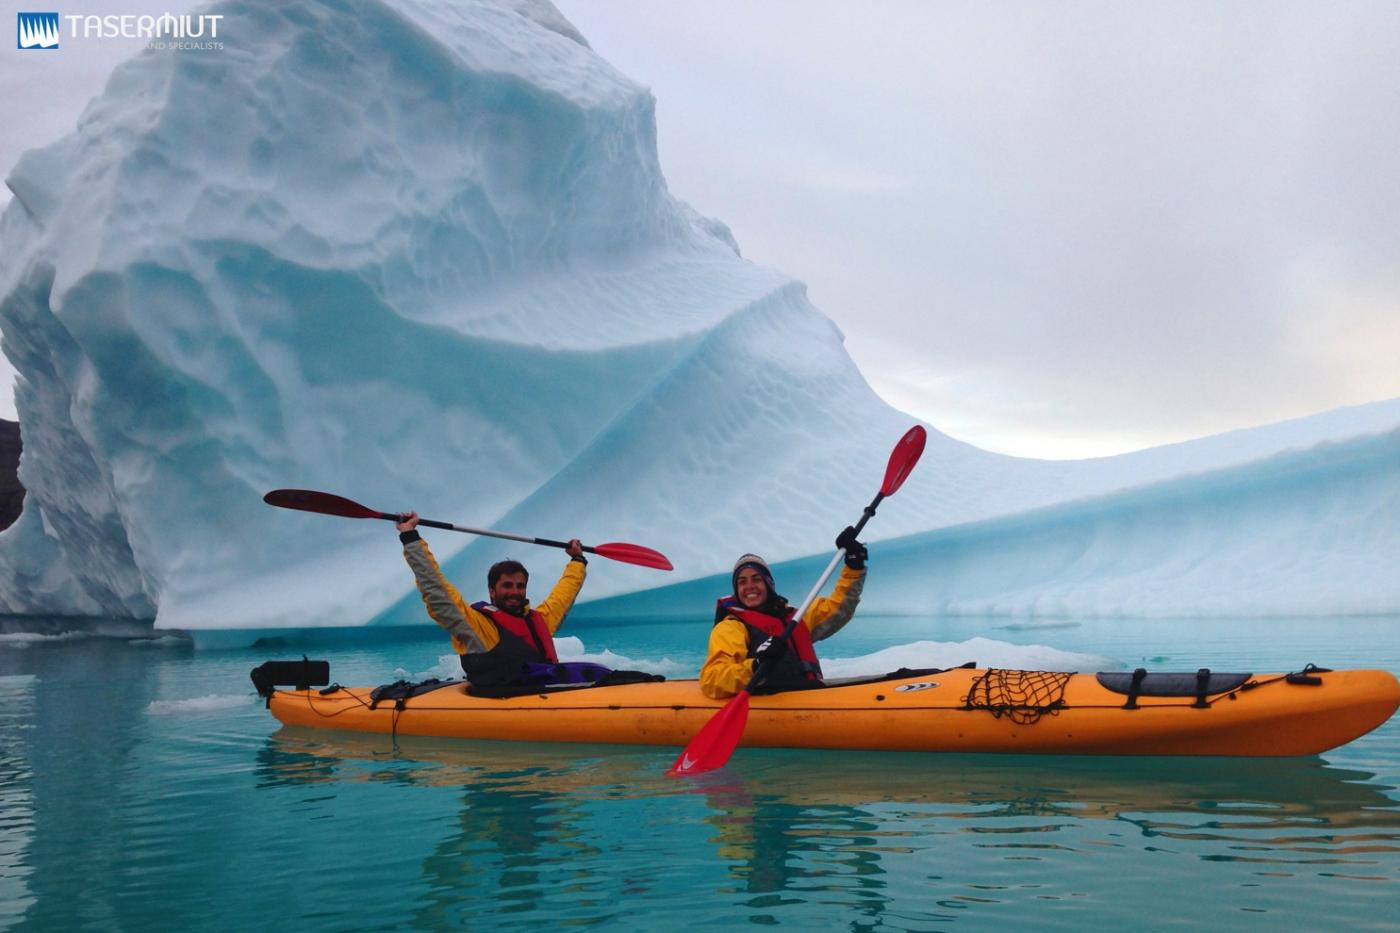 Tasermiut Expeditions: Adventure break from Iceland